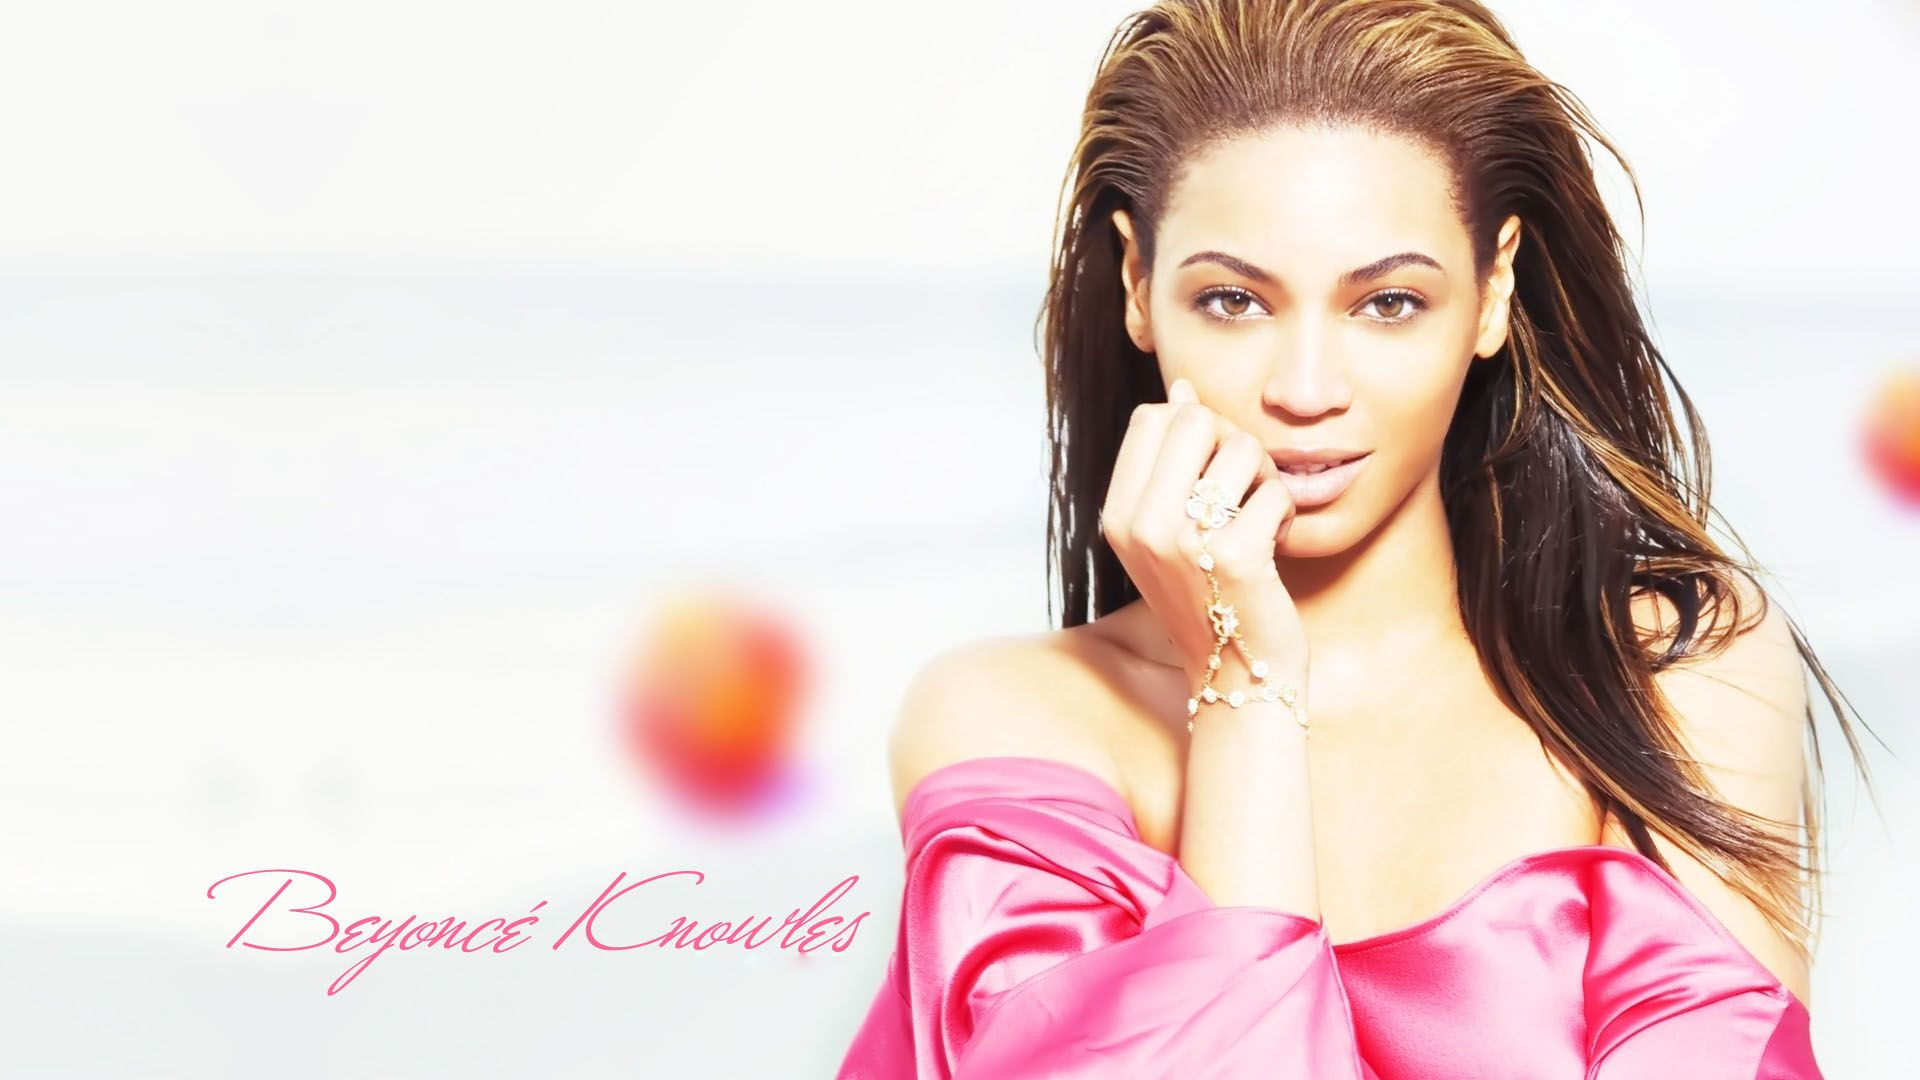 Beyonce Knowles in Pink Dress Pink dress, Beyonce